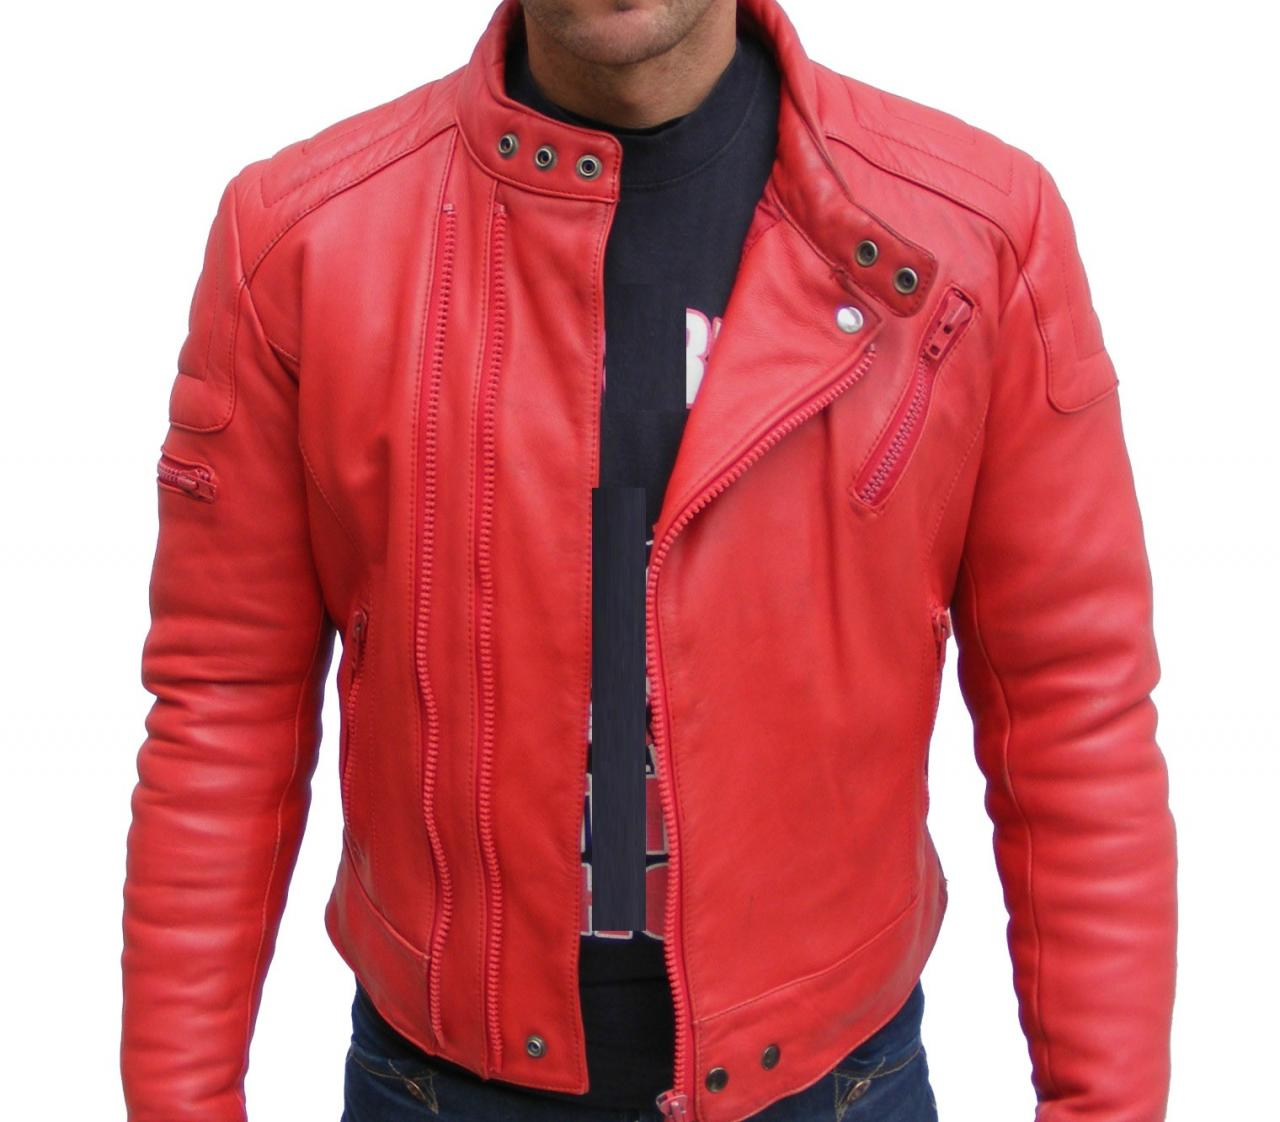 MENS BOMBER LEATHER JACKET, RED COLOR JACKET MEN, LEATHER JACKET MAN